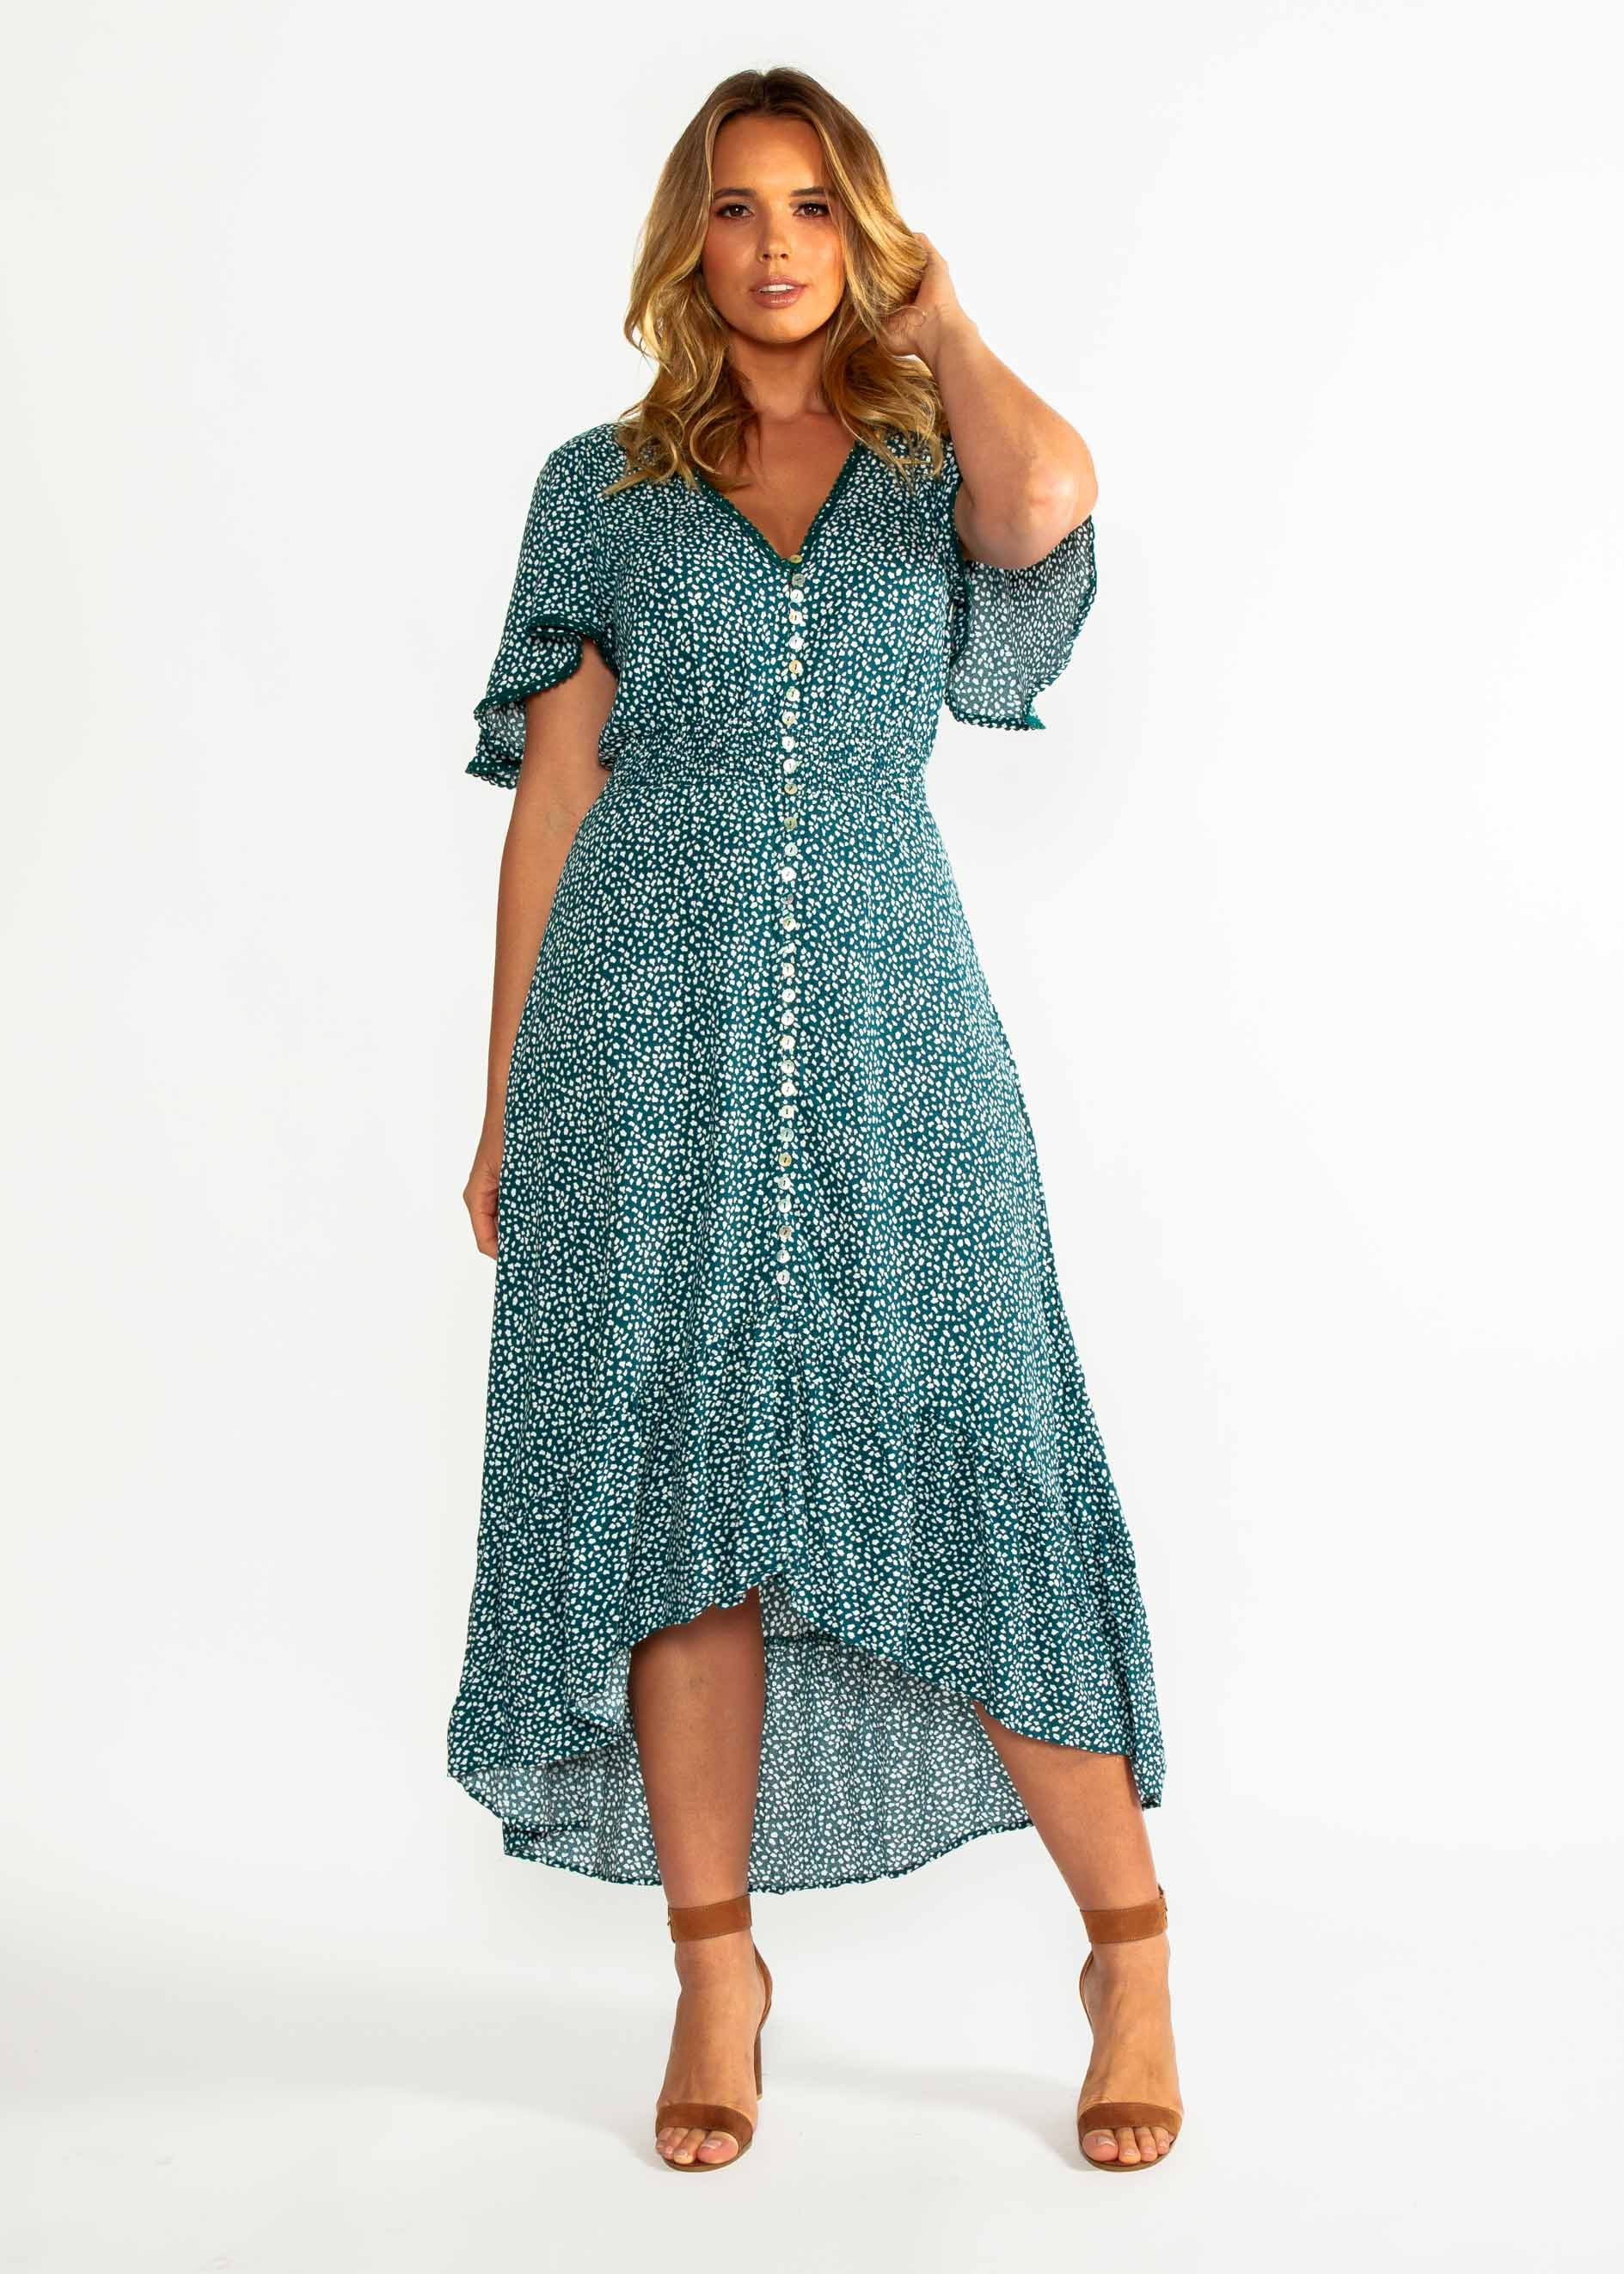 Leaving California Midi Dress - Emerald